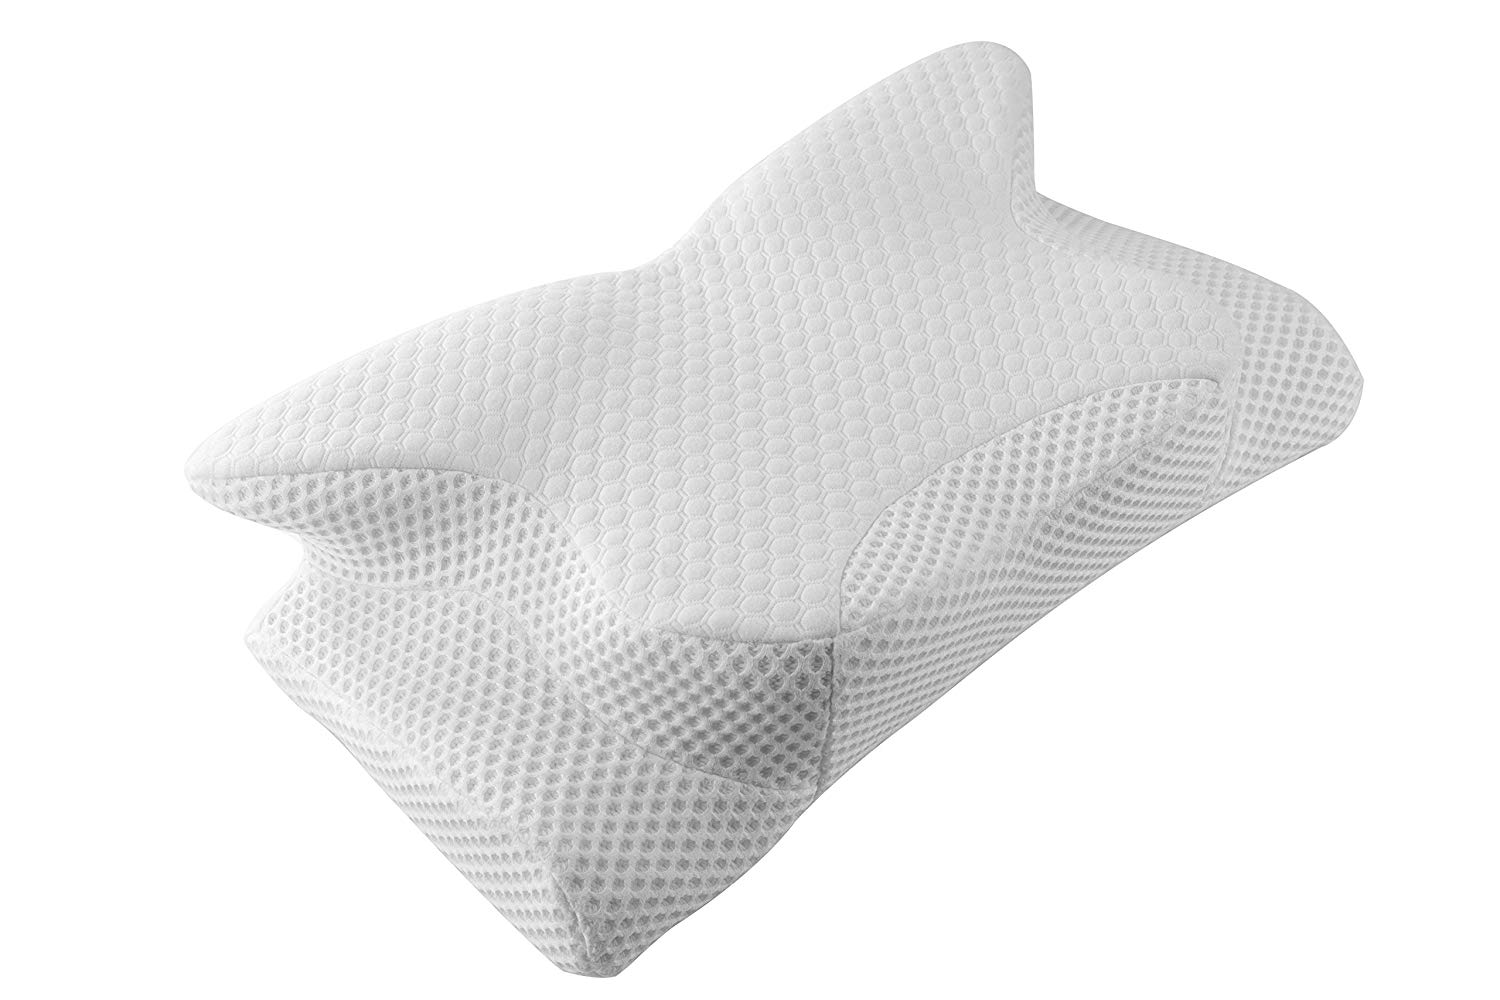 Coisum Pillow for Neck Pain Review by www.snoremagazine.com